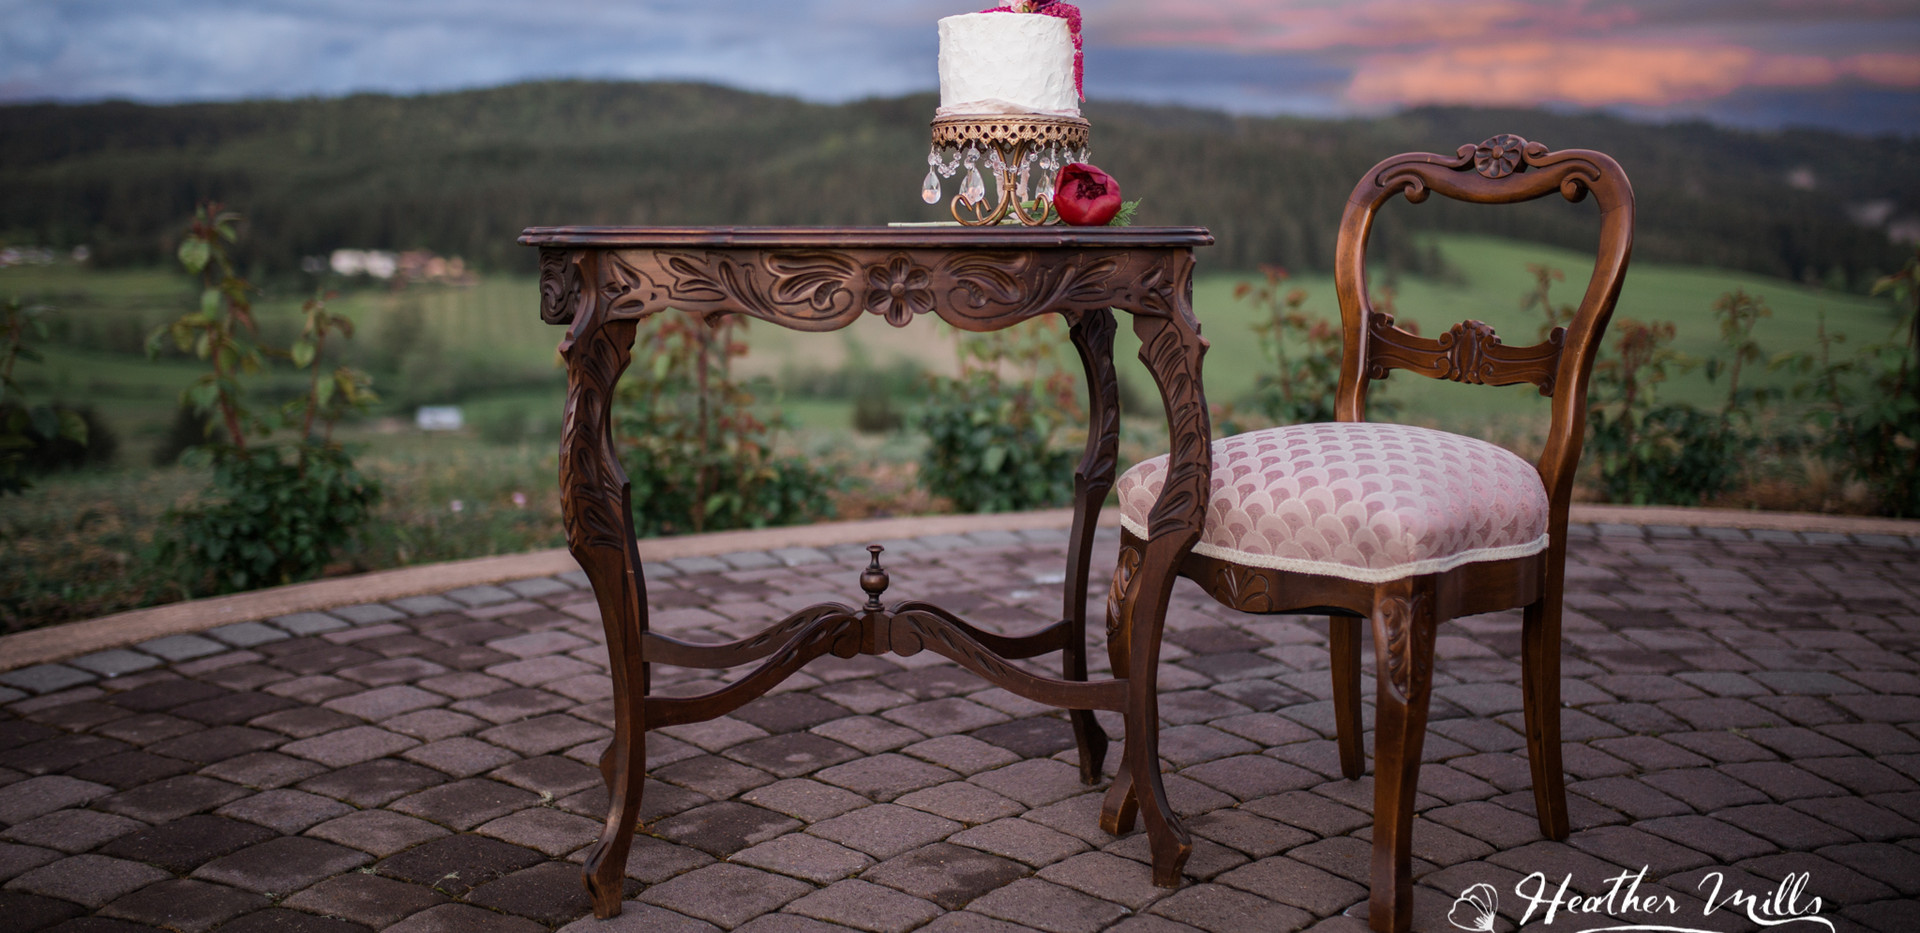 Wooden Table w/floral design